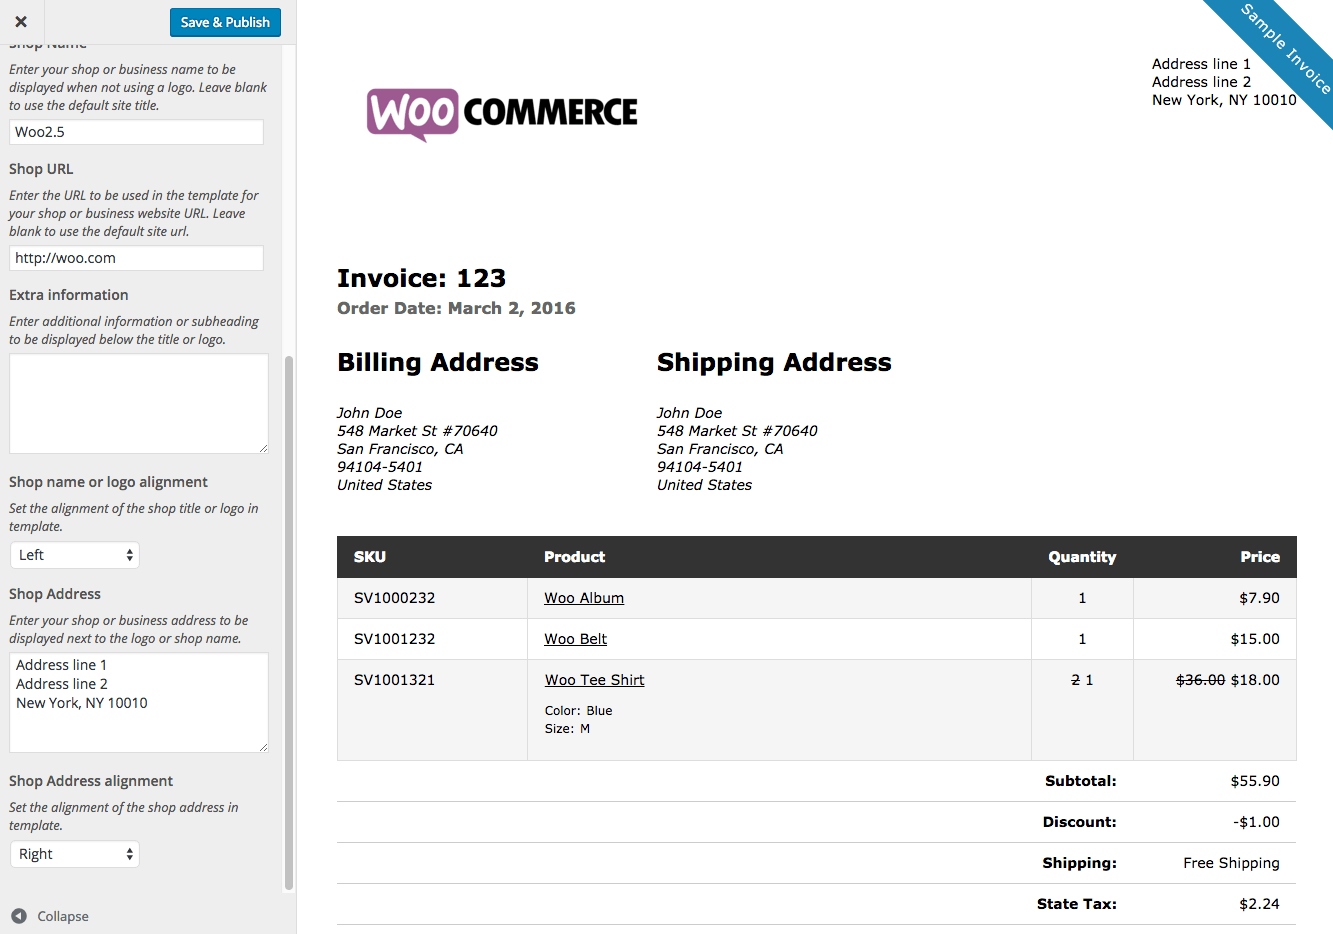 Ebitus  Unique Woocommerce Print Invoices Amp Packing Lists  Woocommerce Docs With Outstanding Woocommerce Print Invoices  Packing Lists Customizer With Enchanting Lic Paid Receipt Online Also Bpa Free Thermal Receipt Paper In Addition Student Fee Receipt Format And Format For Cash Receipt As Well As Home Receipt Scanner Additionally Cash Payment Receipt Template Word From Docswoocommercecom With Ebitus  Outstanding Woocommerce Print Invoices Amp Packing Lists  Woocommerce Docs With Enchanting Woocommerce Print Invoices  Packing Lists Customizer And Unique Lic Paid Receipt Online Also Bpa Free Thermal Receipt Paper In Addition Student Fee Receipt Format From Docswoocommercecom